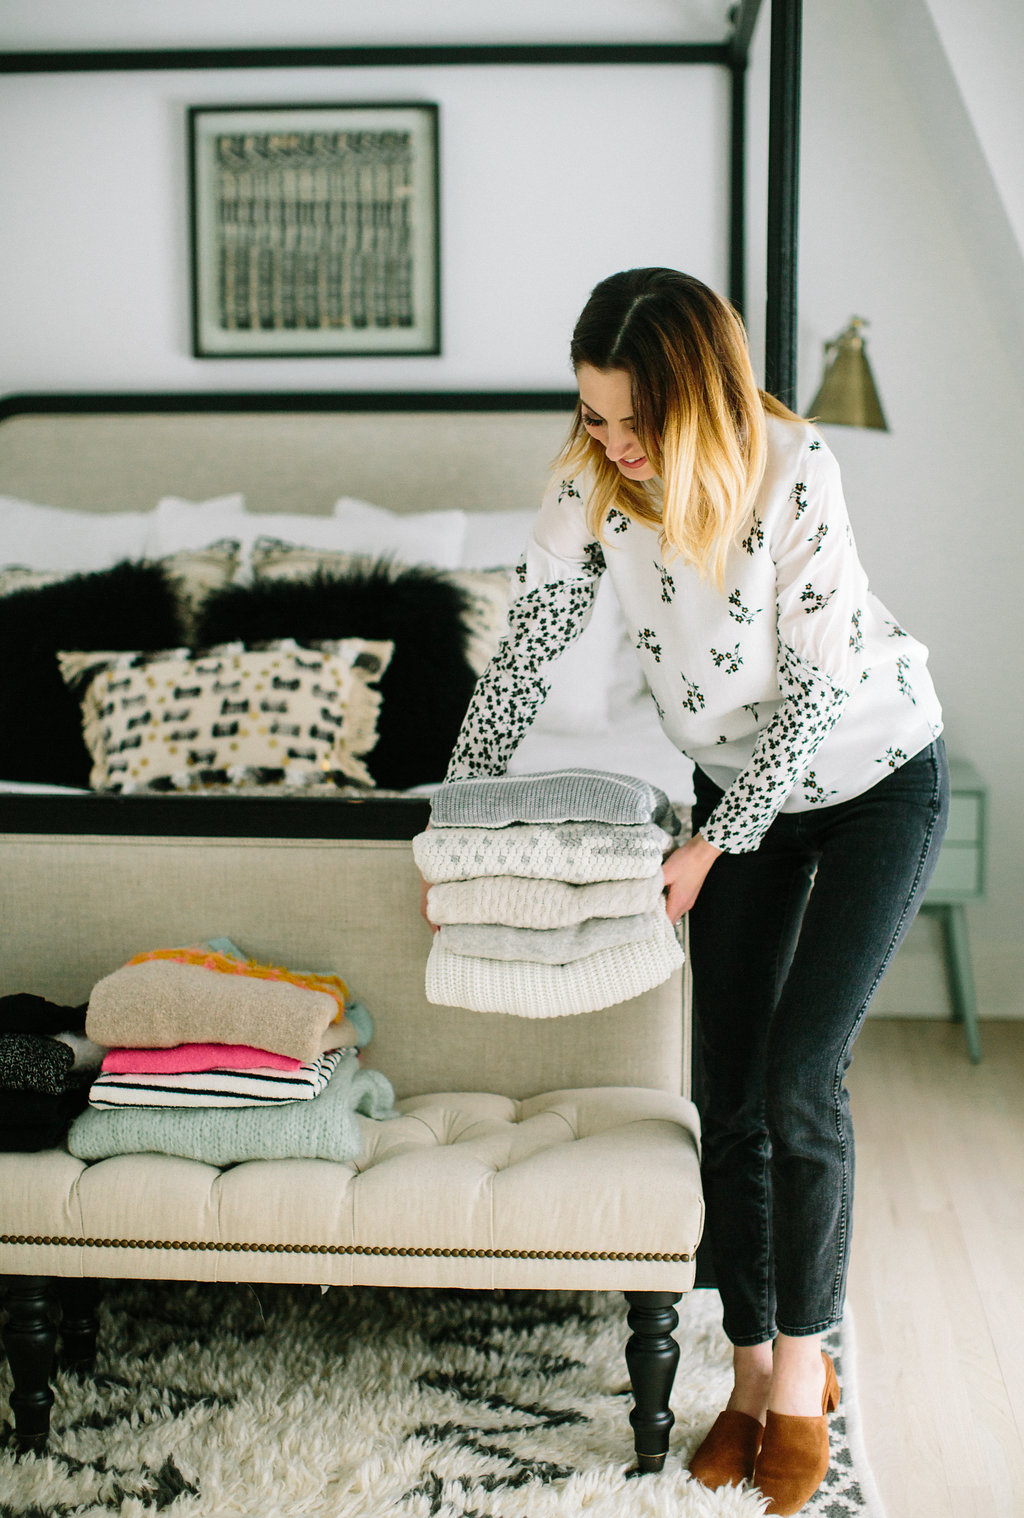 Eva Amurri Martino makes stacks of sweaters on the bed at the foot of her master bed